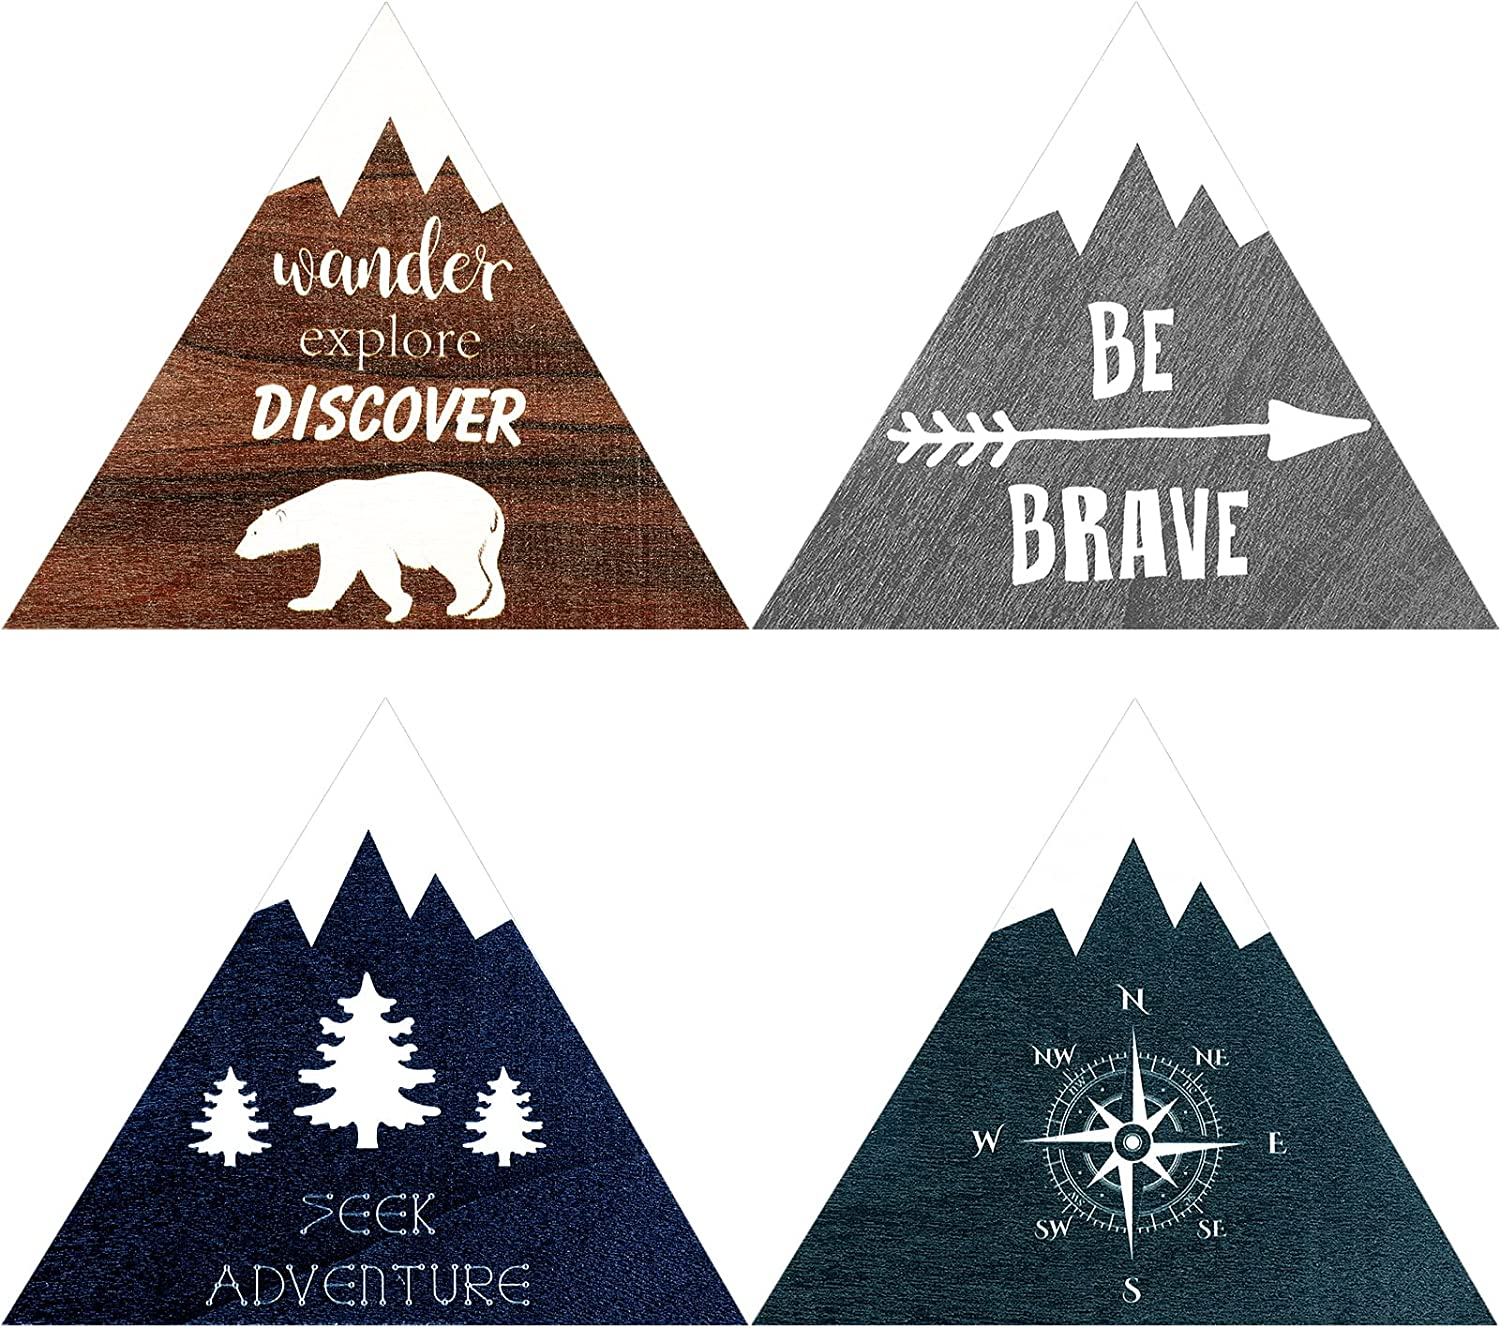 Blulu 4 Pieces Inspirational Wooden Nursery Decor Mountain Decor Wall Sign Rustic Nature Forest Woodland Adventure Motivational Wooden Hanging Decor with Hook for Baby Bedroom Nursery Decor